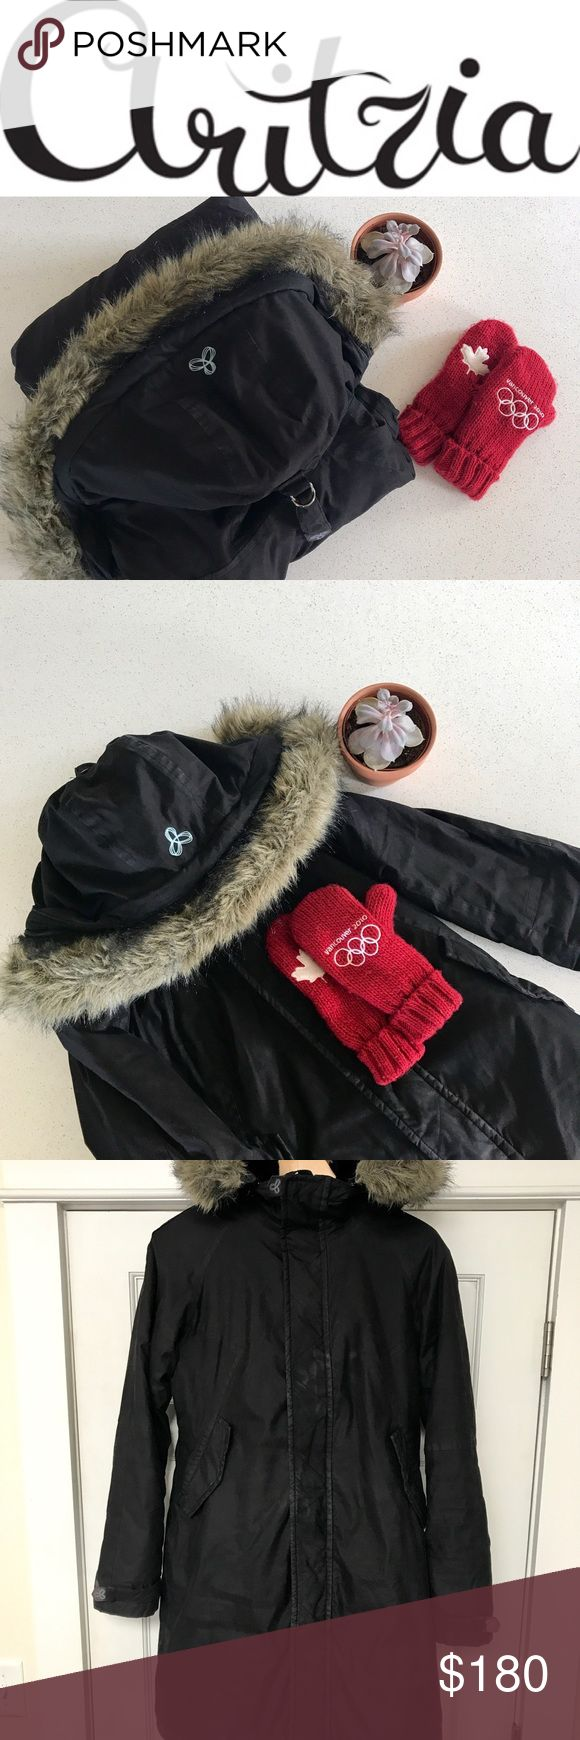 b19859ac7 womens canada goose thompson young urban dictionary